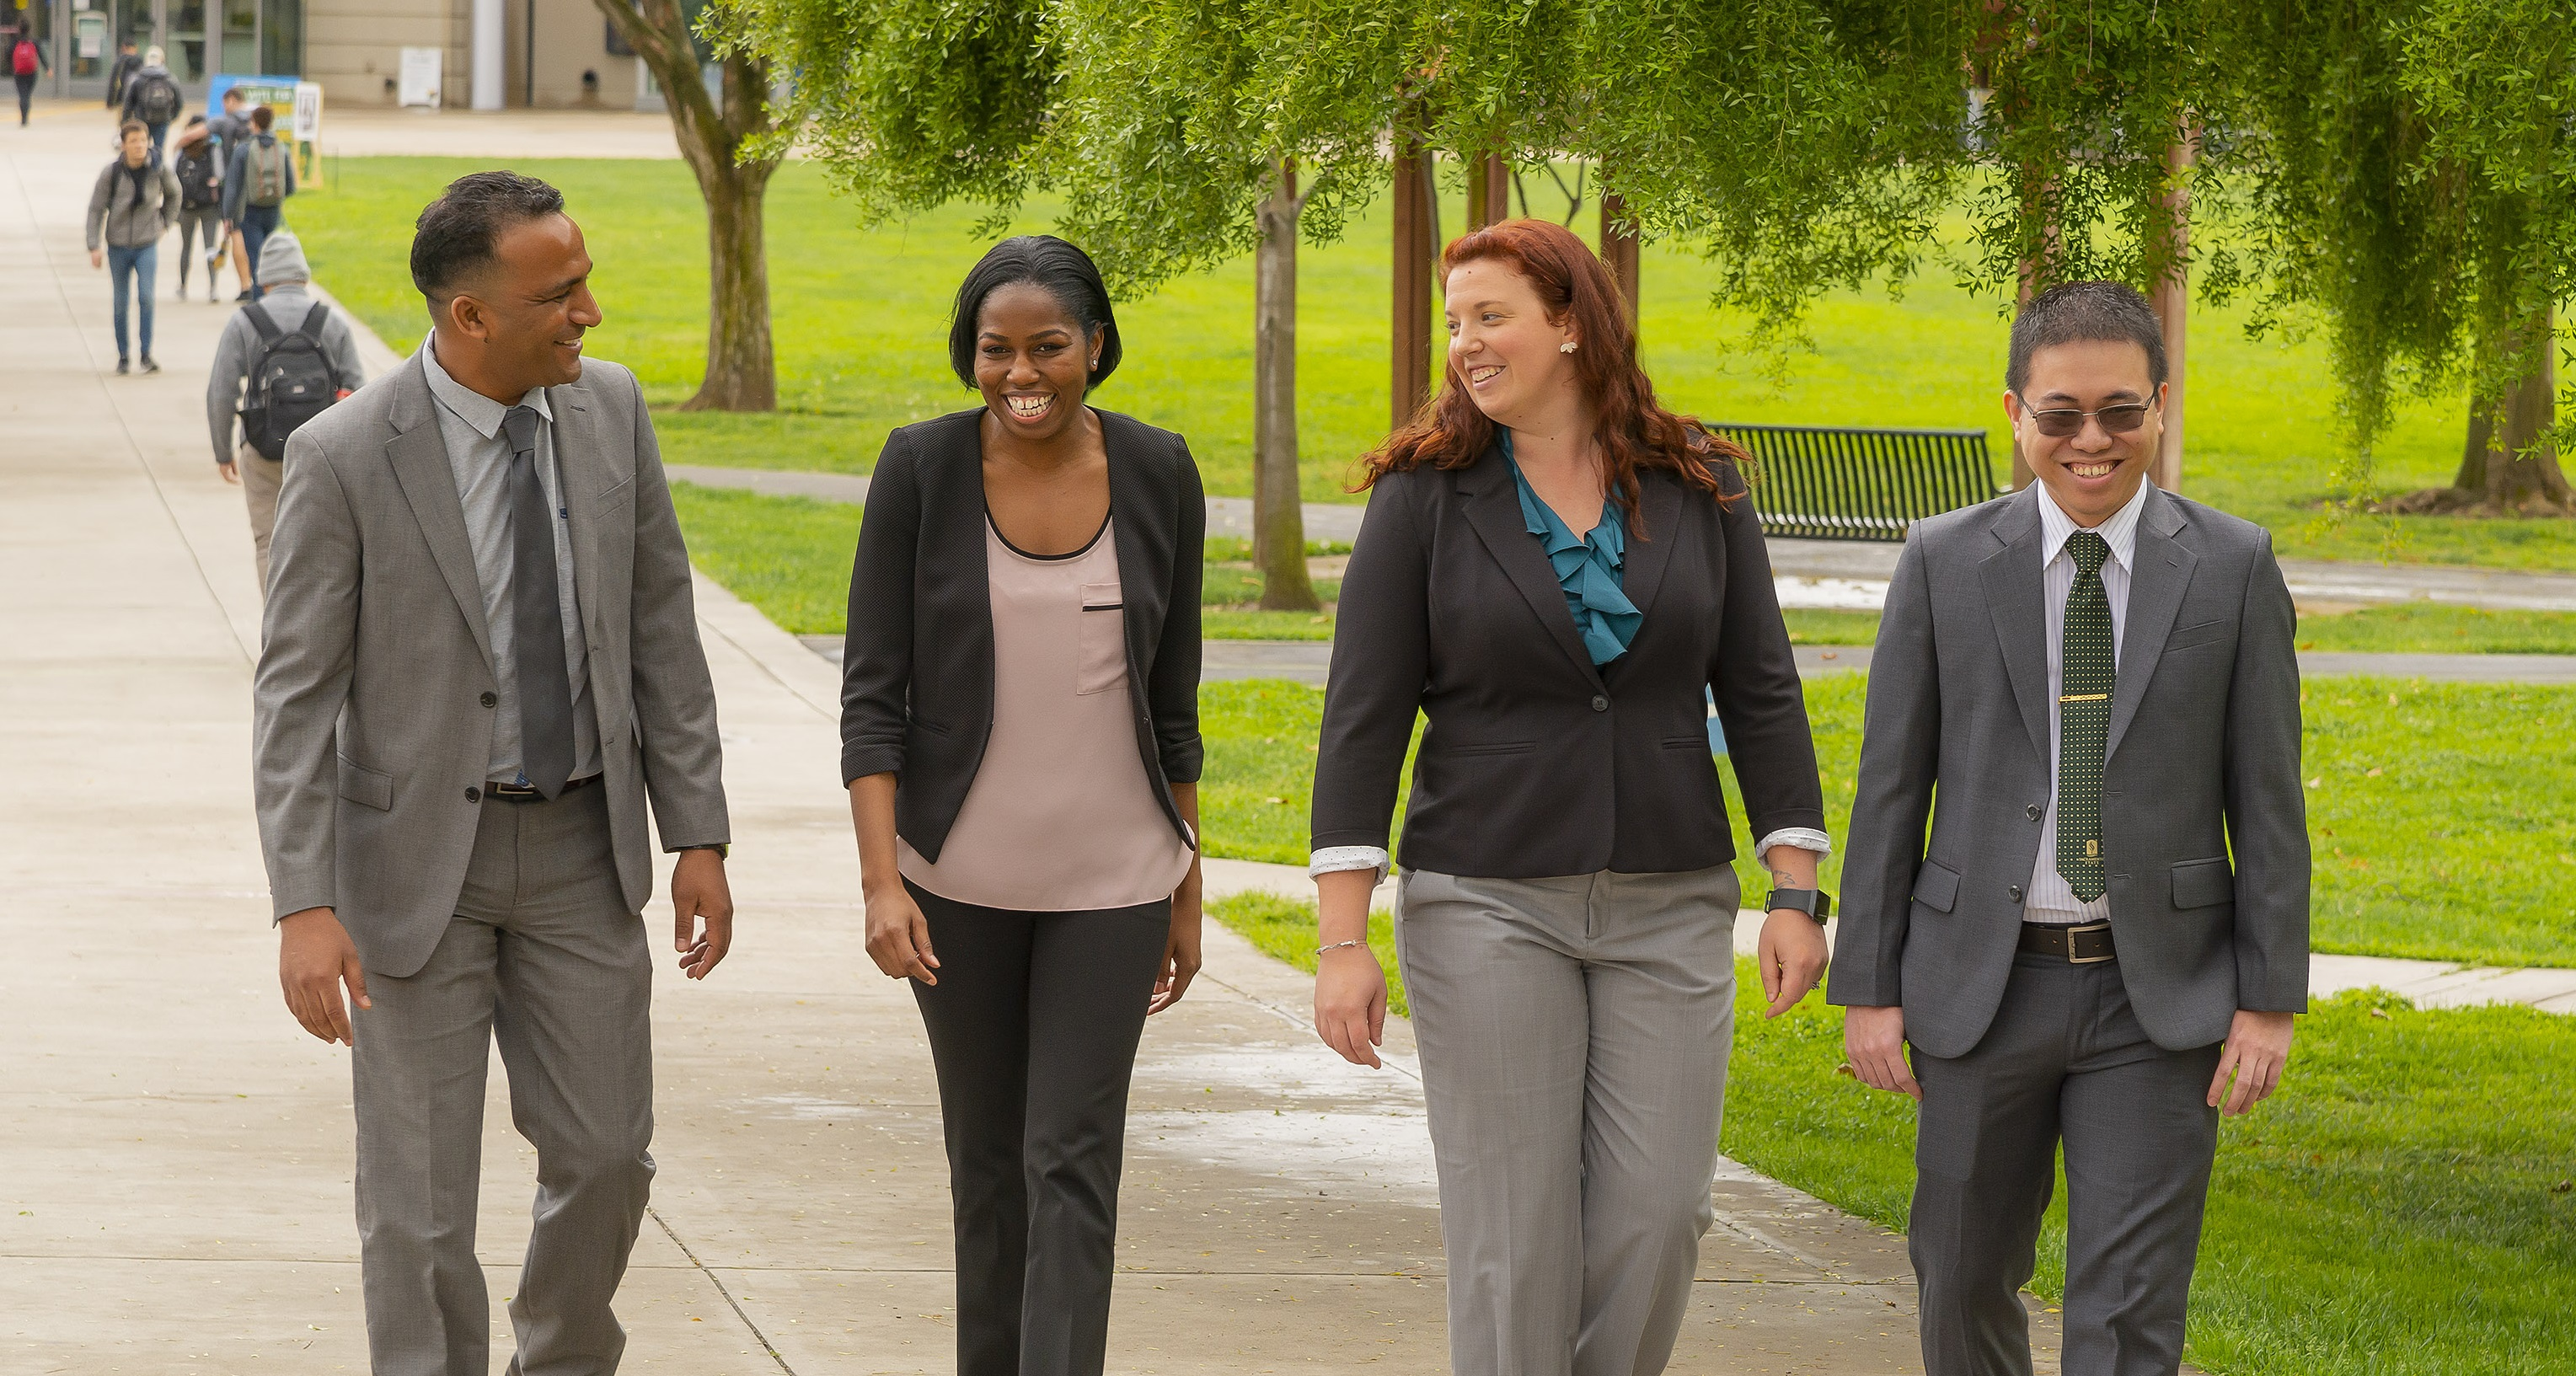 MBA Students on Campus